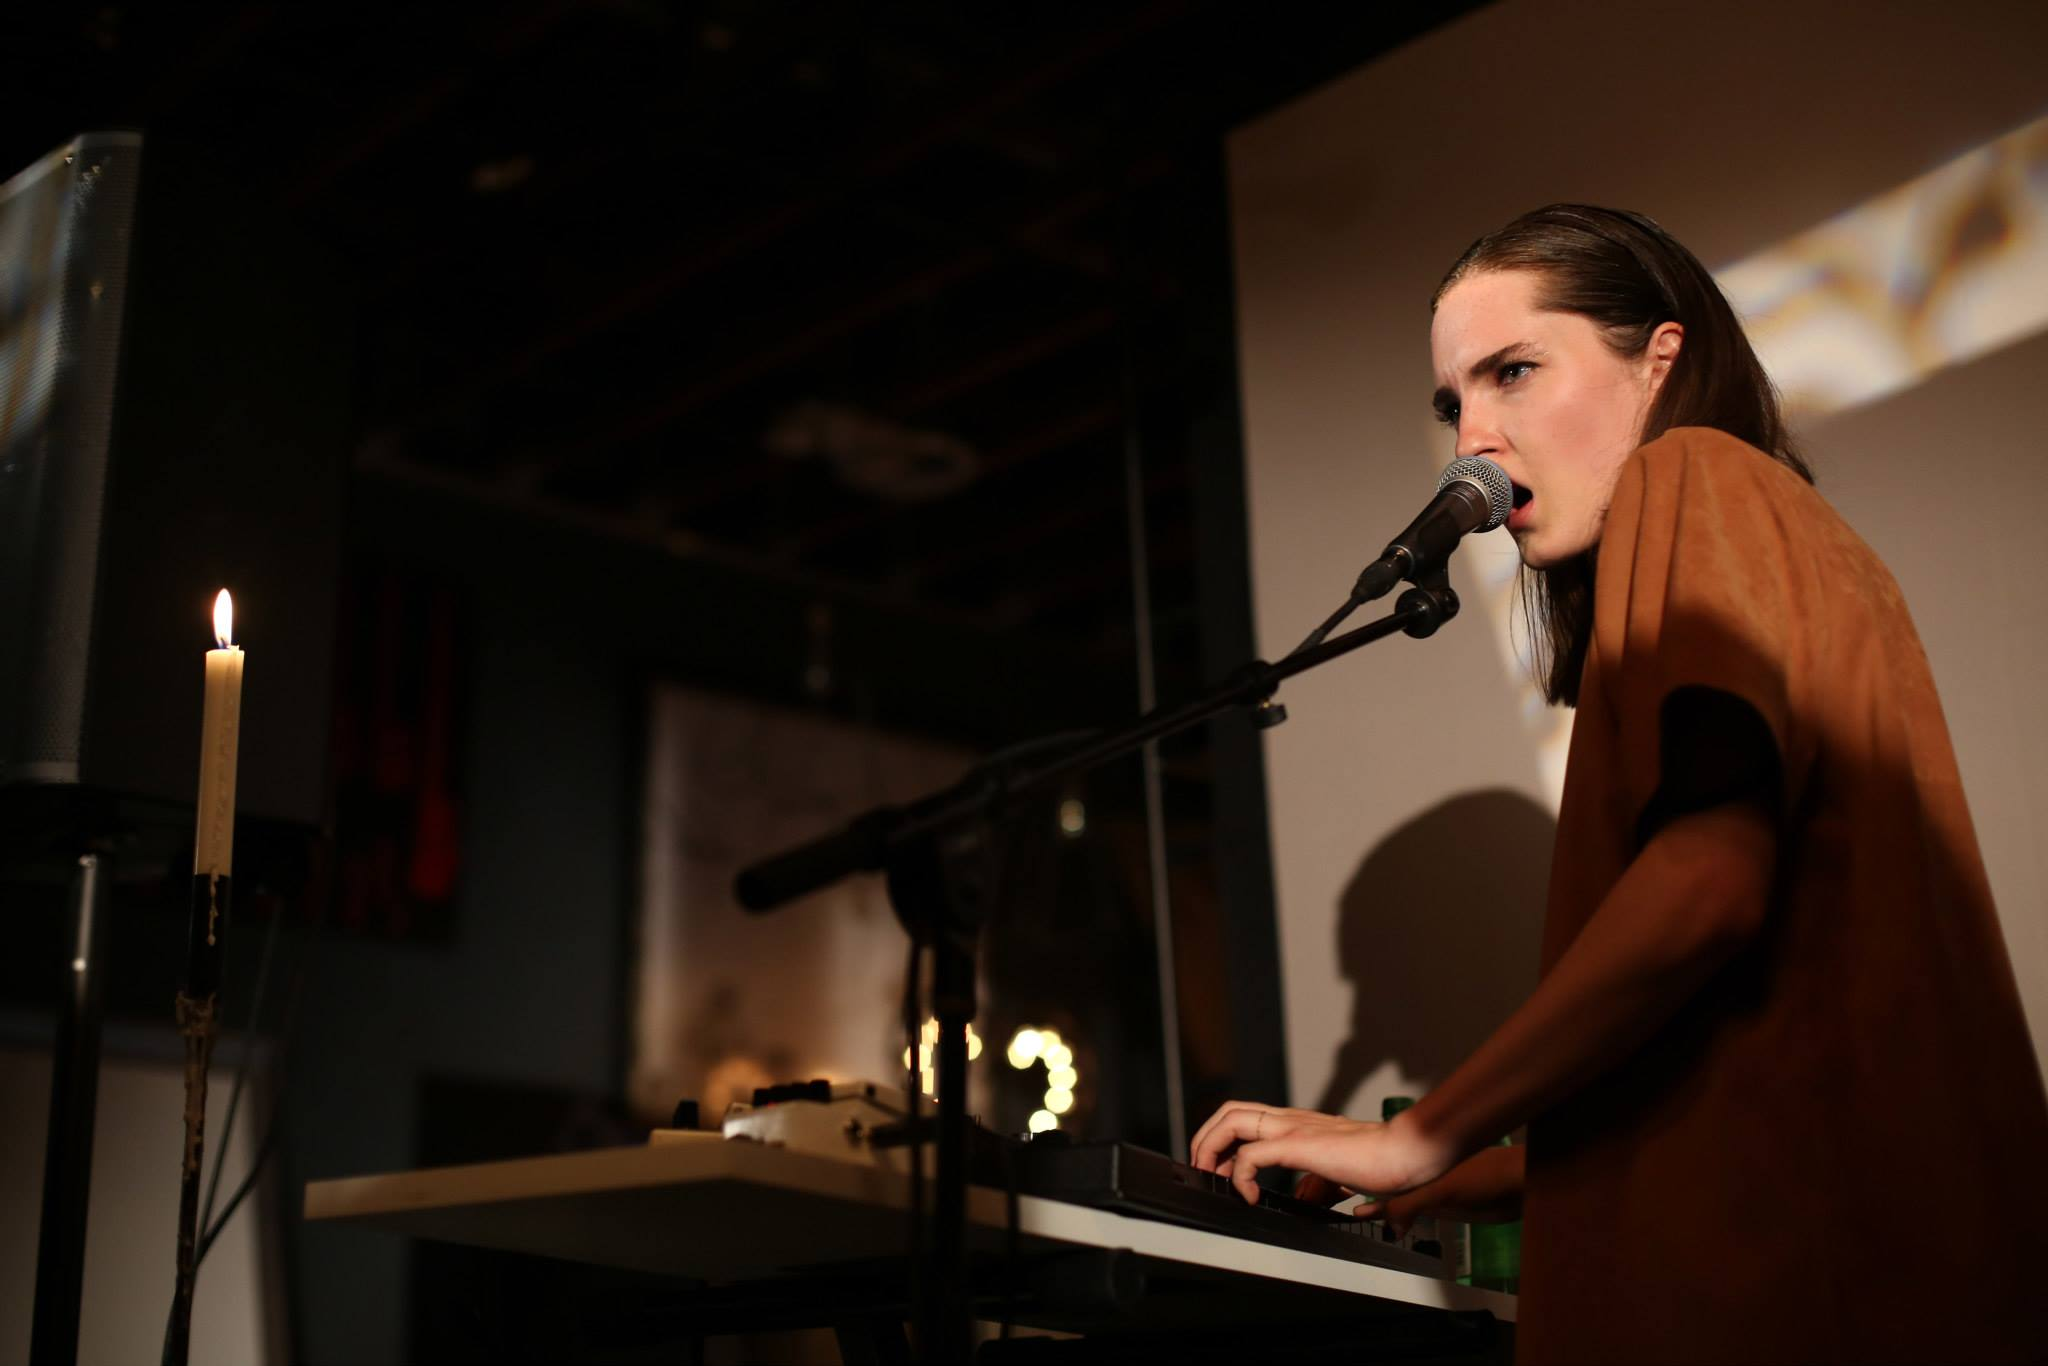 lena_fayre_independent_artist_sxsw_roadtoaustin_festival_underground_booking_gigs_tips